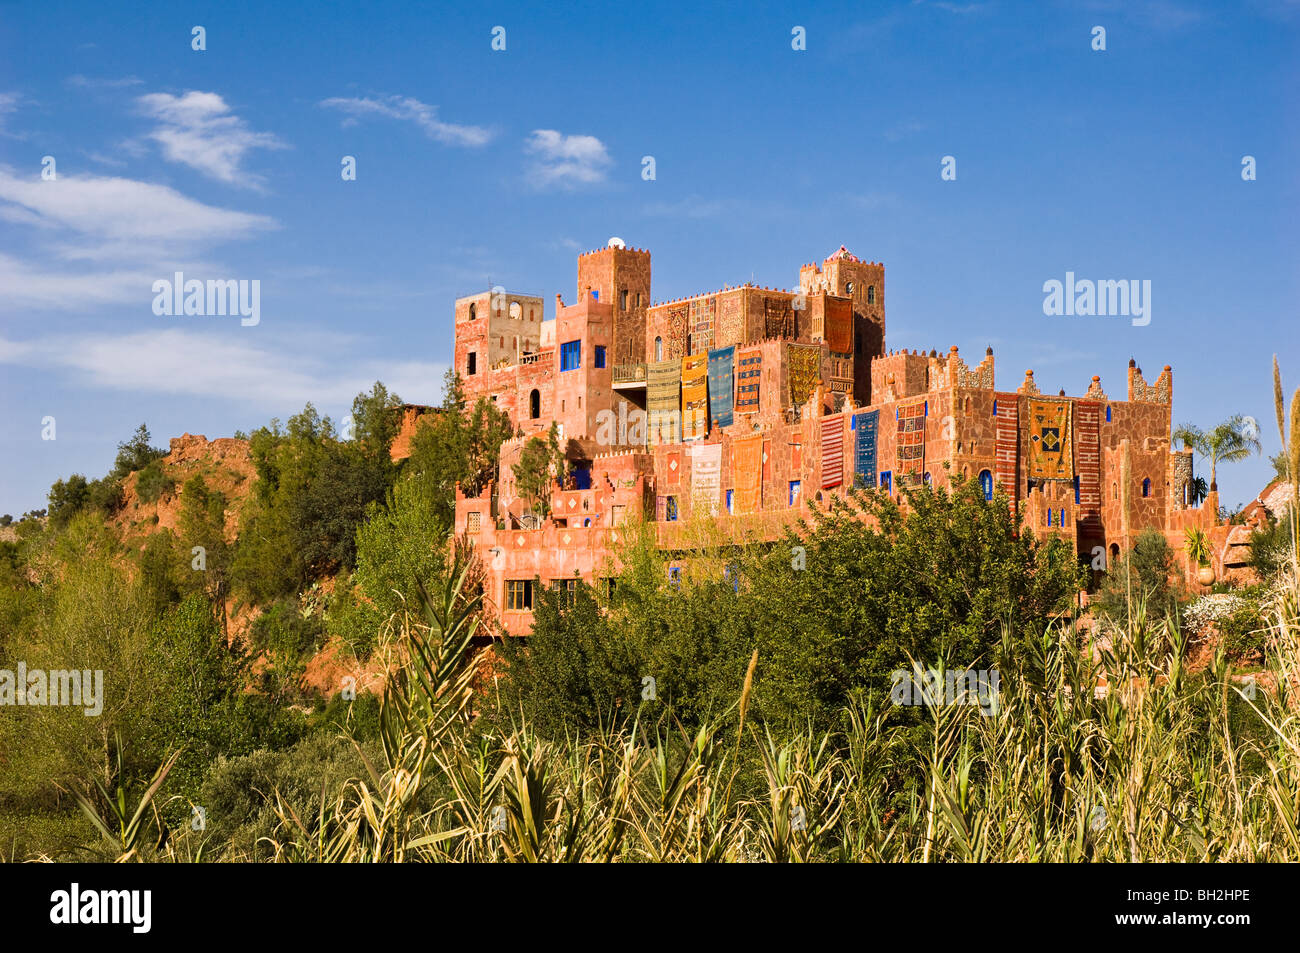 Carpets hanging outside a kasbah in the Ourika Vally, Morocco - Stock Image